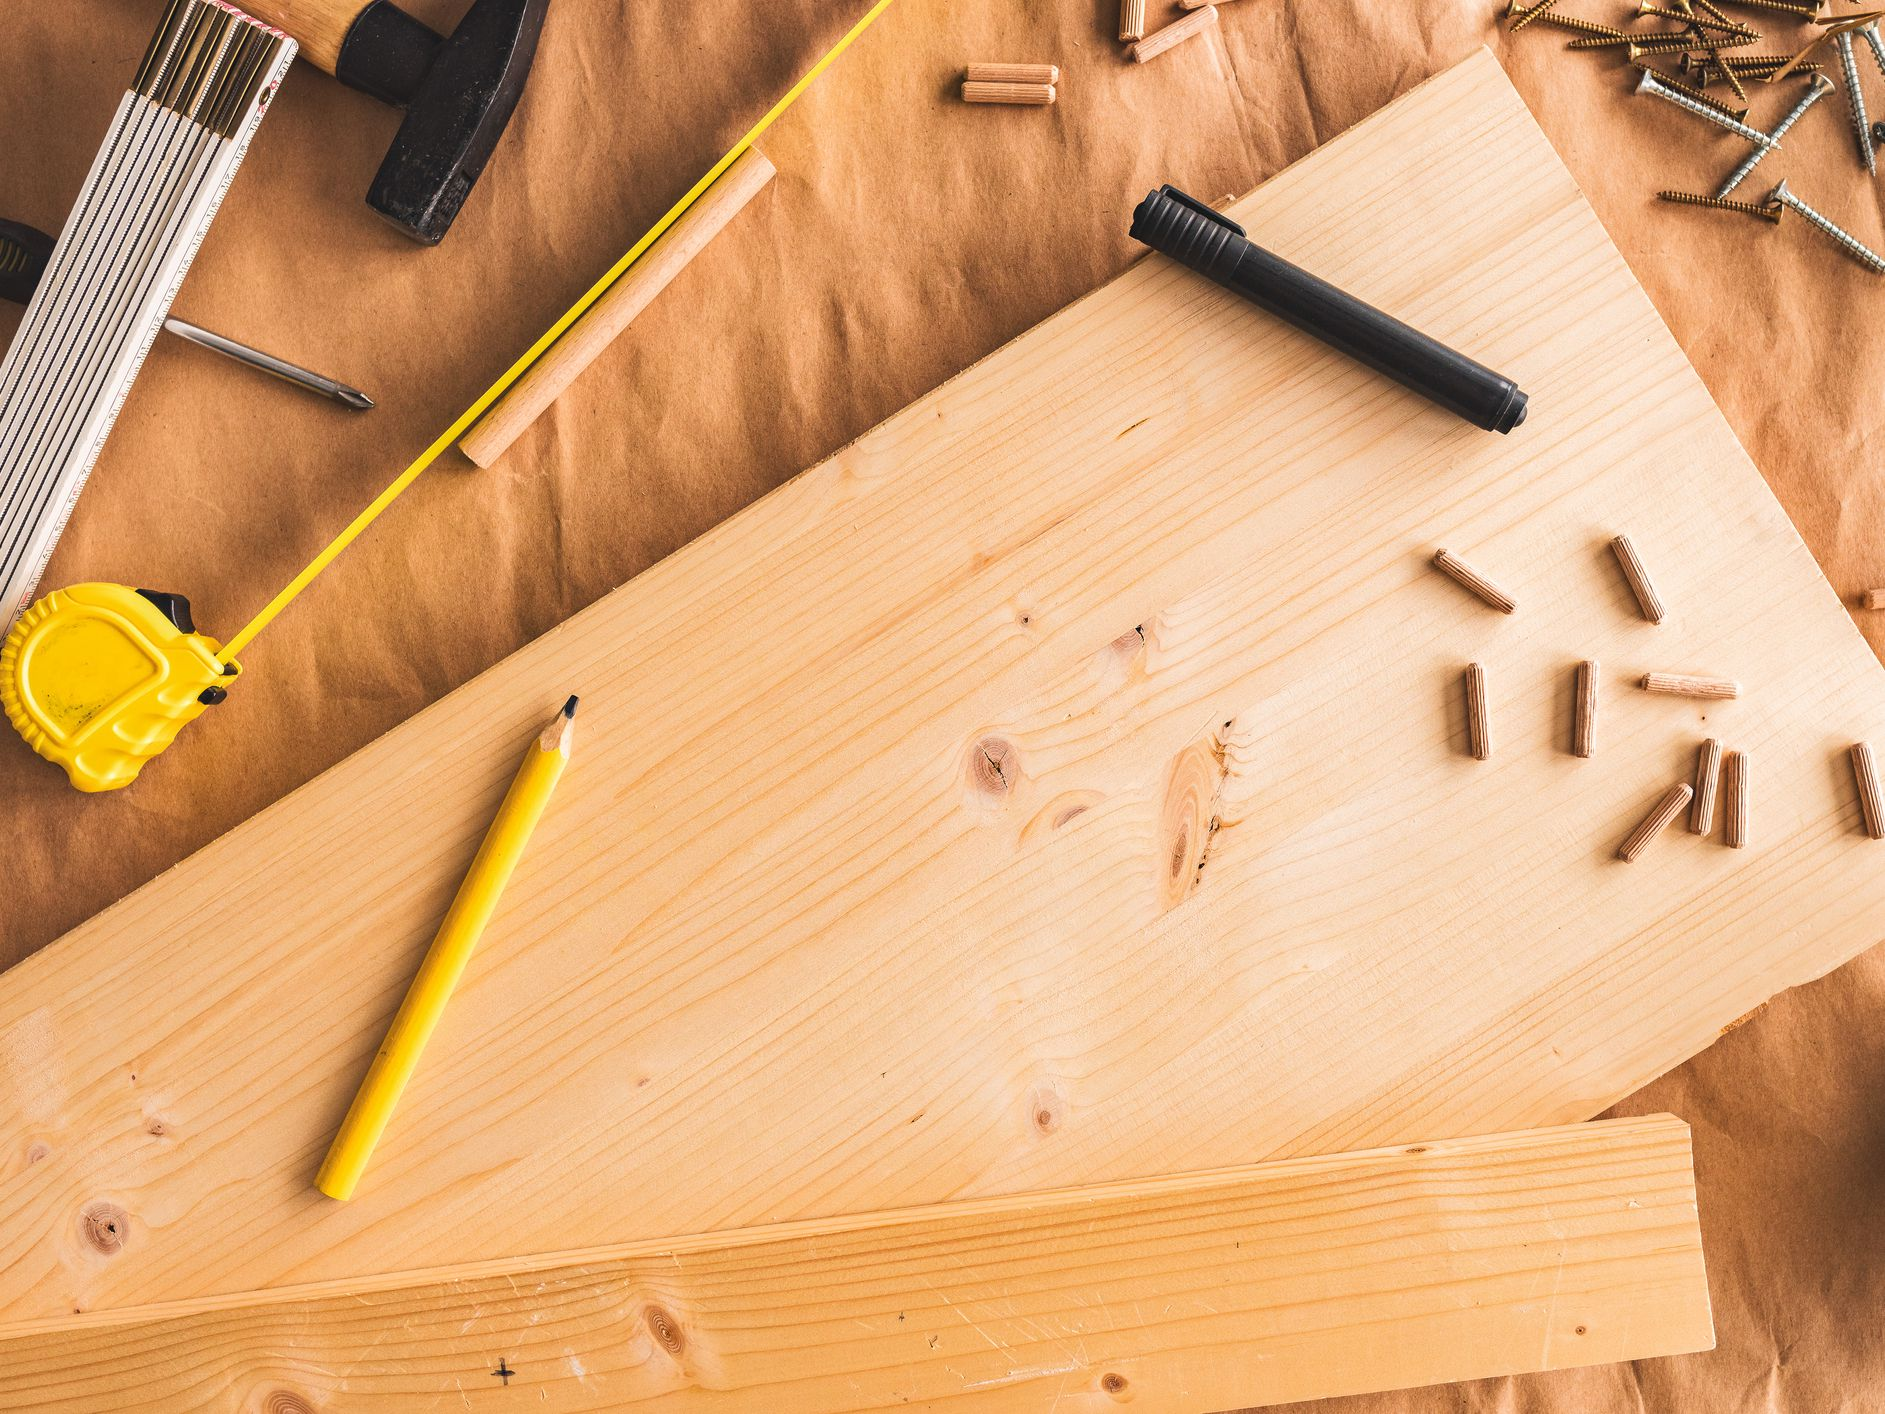 Types of Wood Species for Woodworking